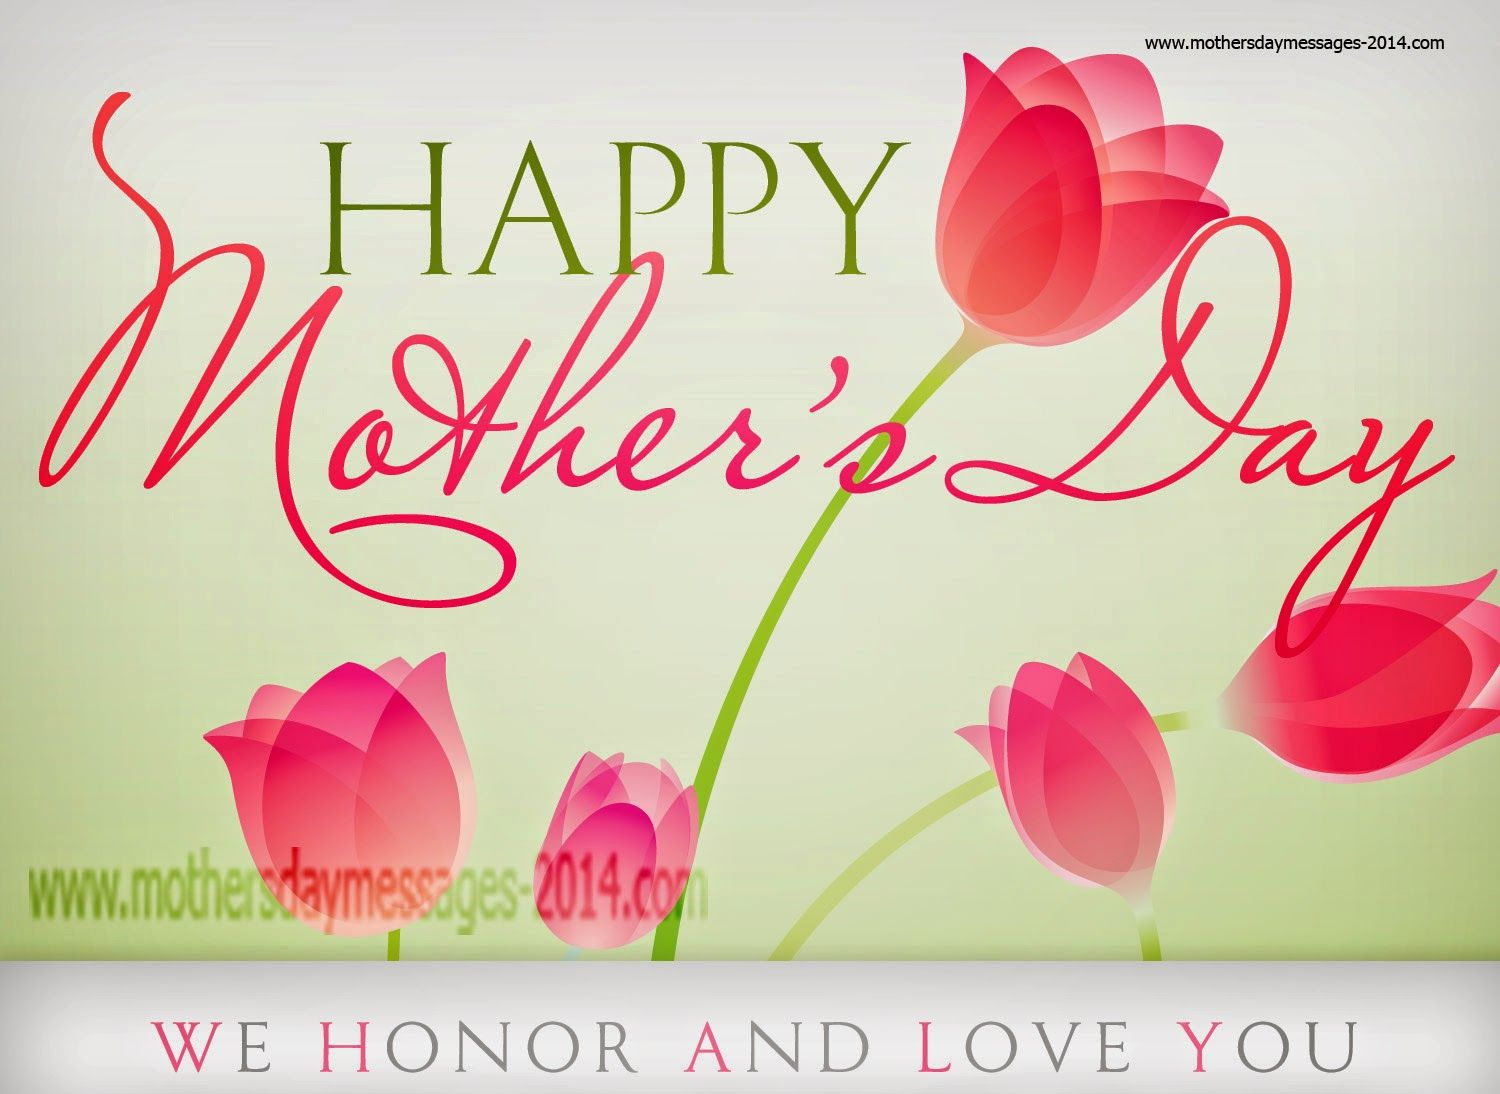 Day for pictures happy mothers facebook